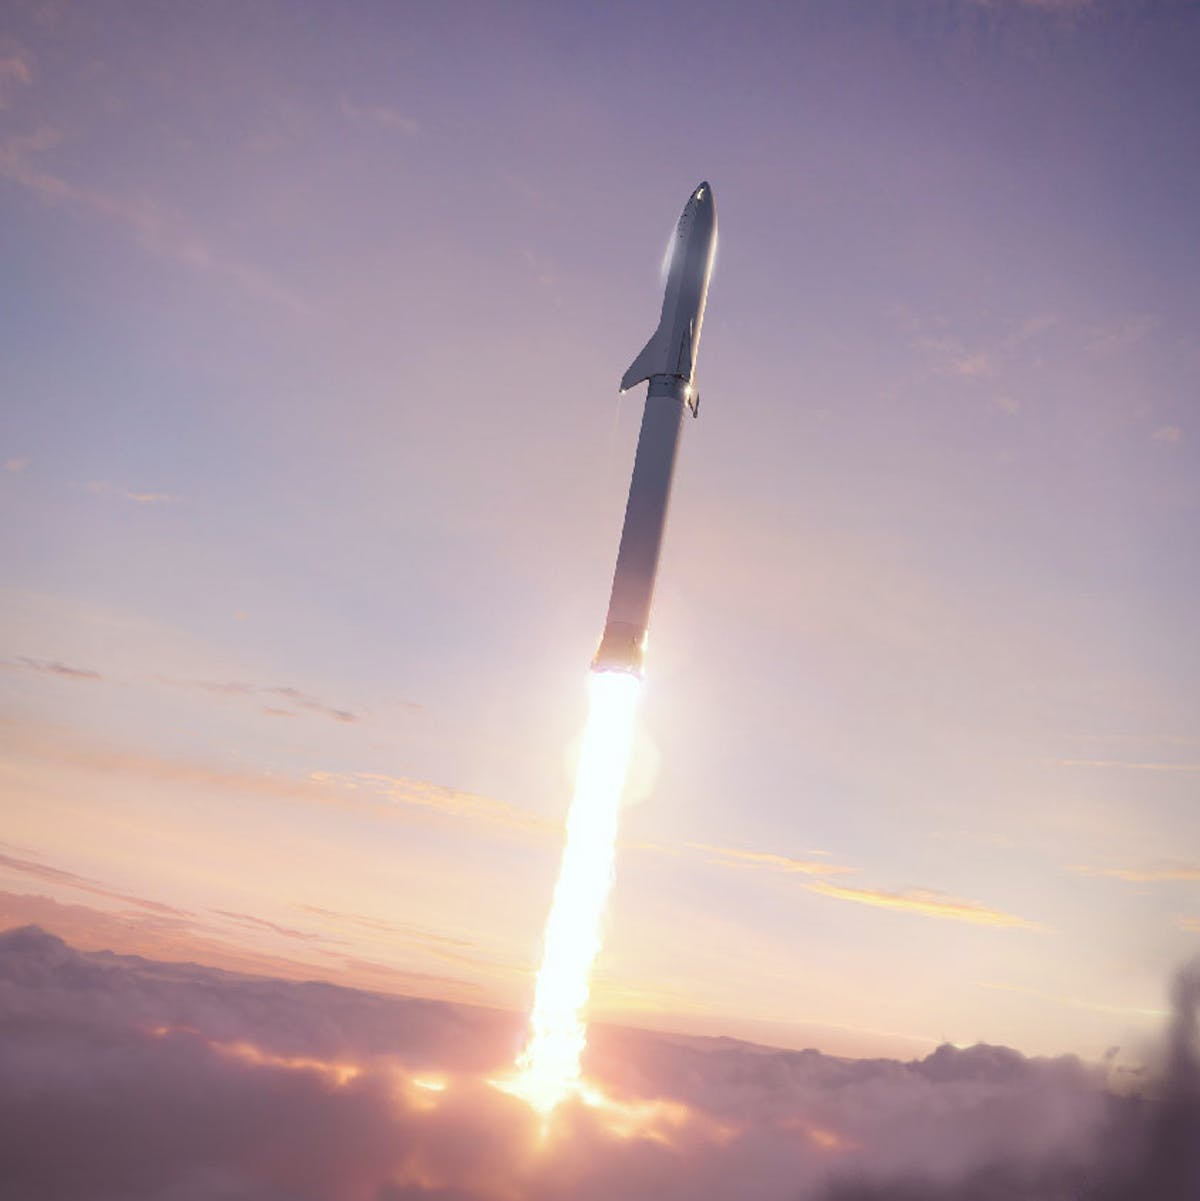 SpaceX: Elon Musk Says Starship Could Send Humans to Moon in Just 5 Years